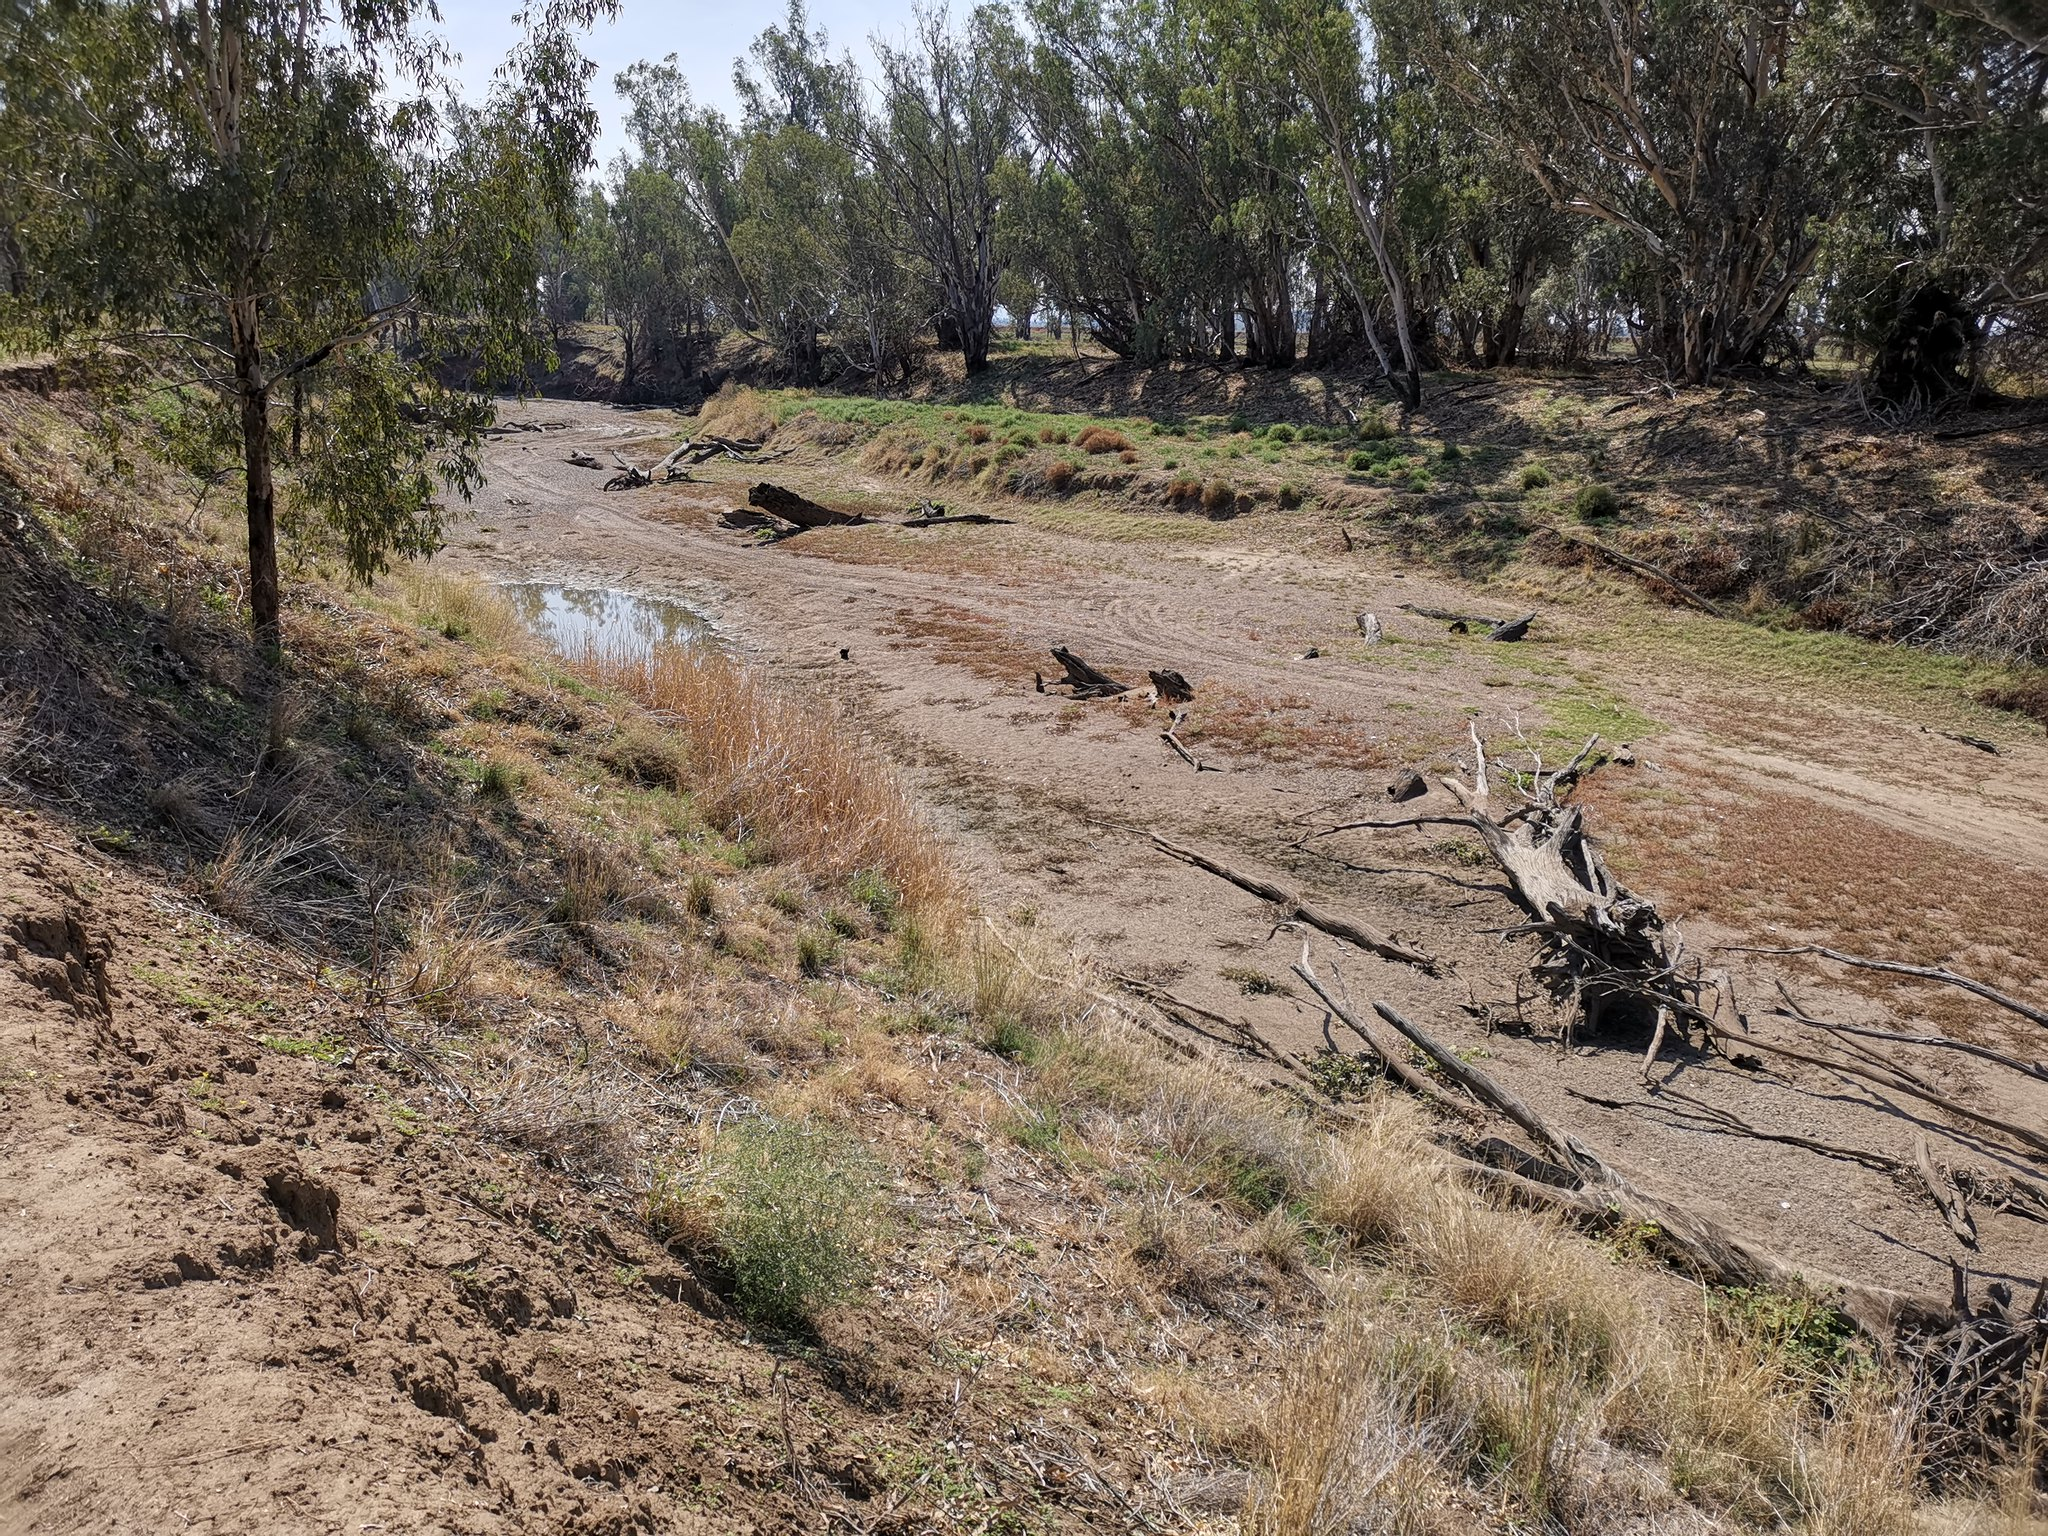 This section of the Namoi River, south of Boggabri, was dry. You can see that a motor vehicle has driven along the riverbed. Photo credit: Michael Cleary/flickr